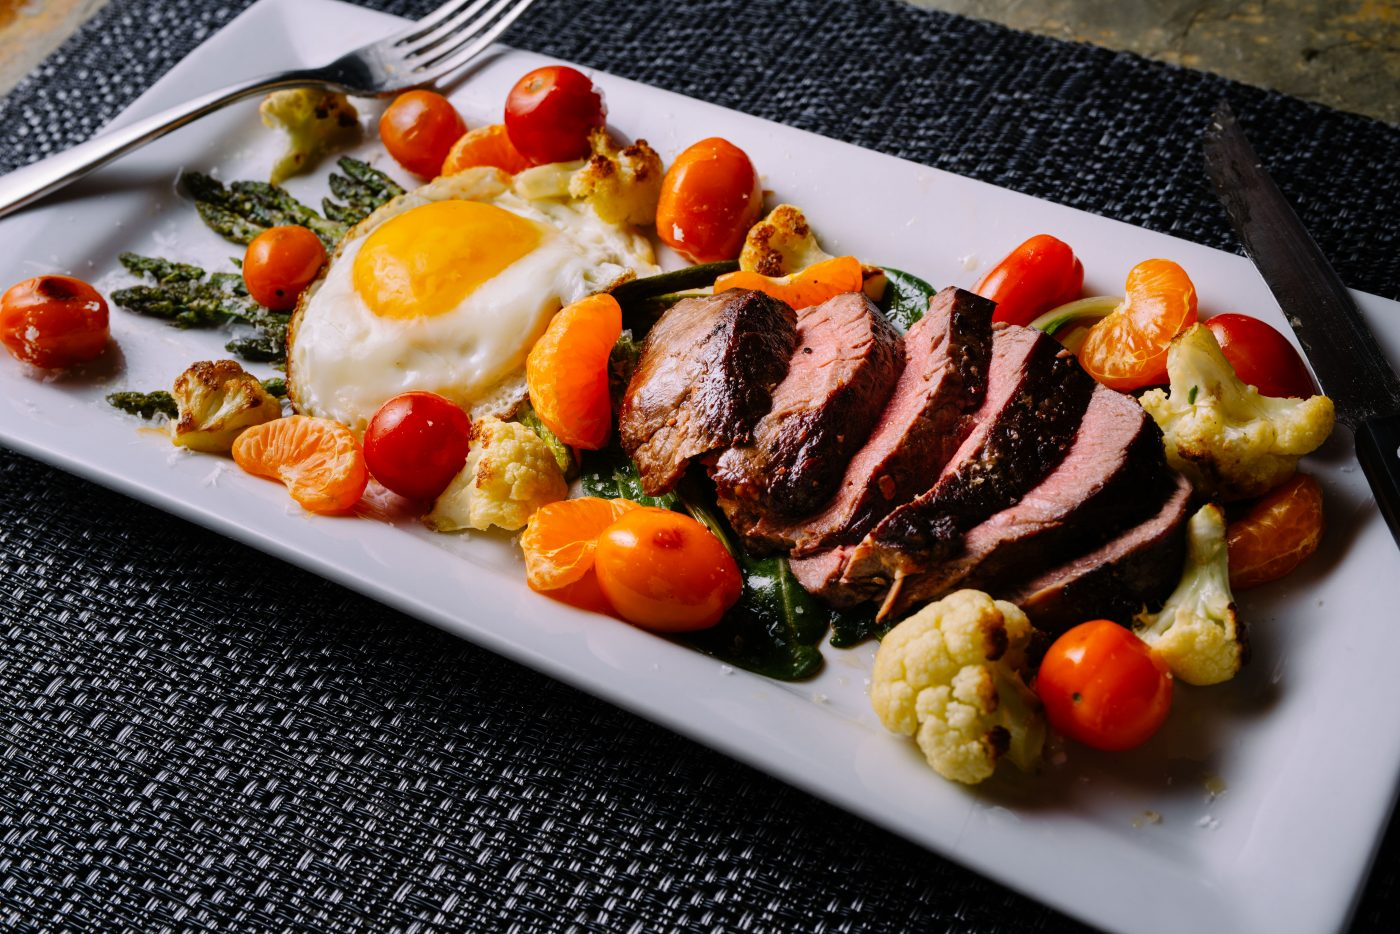 bison filet mignon with egg